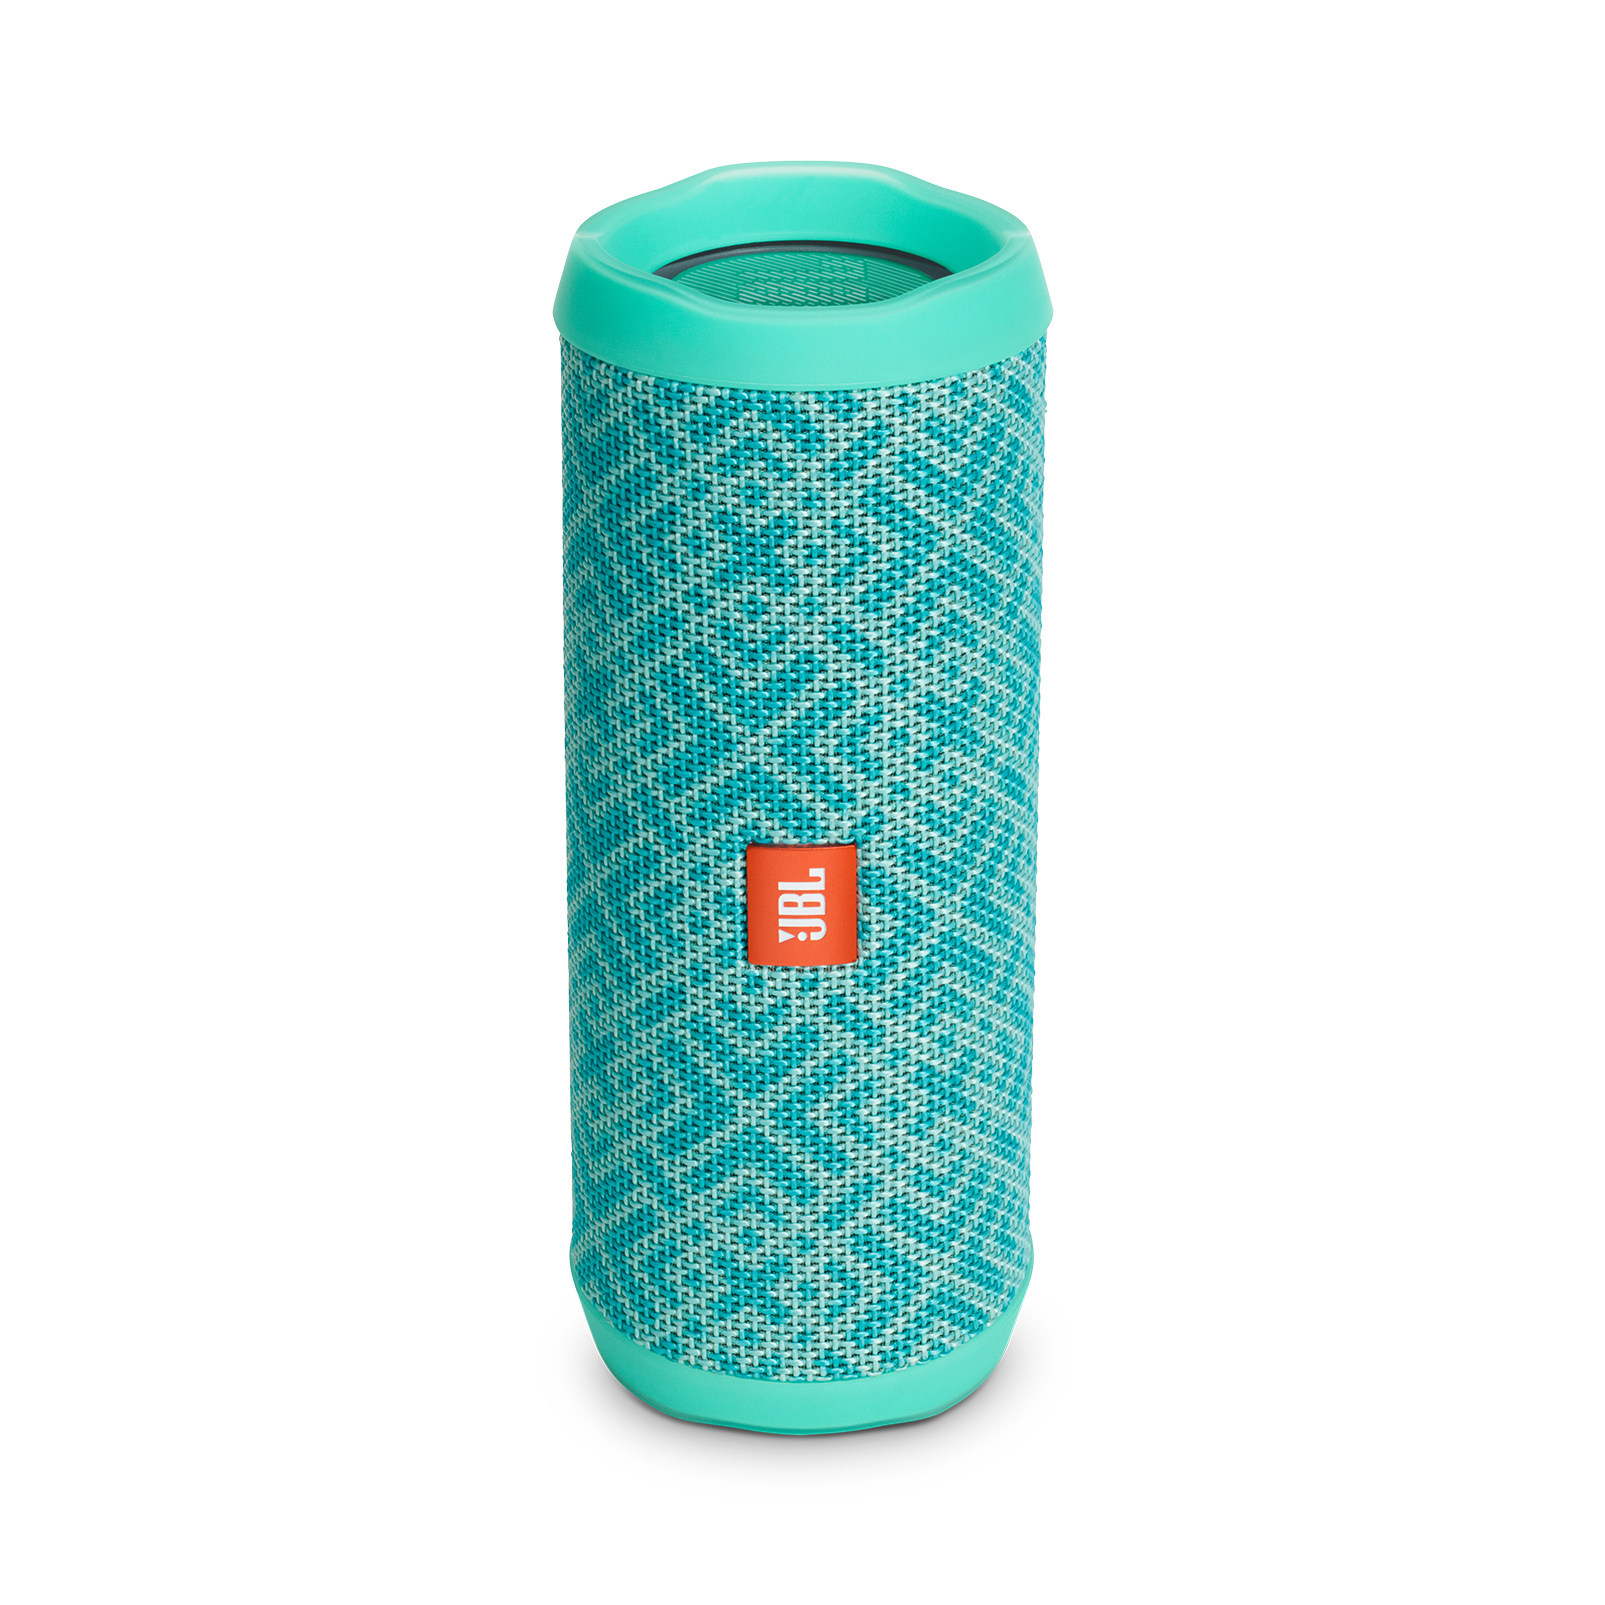 JBL Flip 4 Waterproof Portable Bluetooth Speaker - Mosaic (FLIP4-MC)